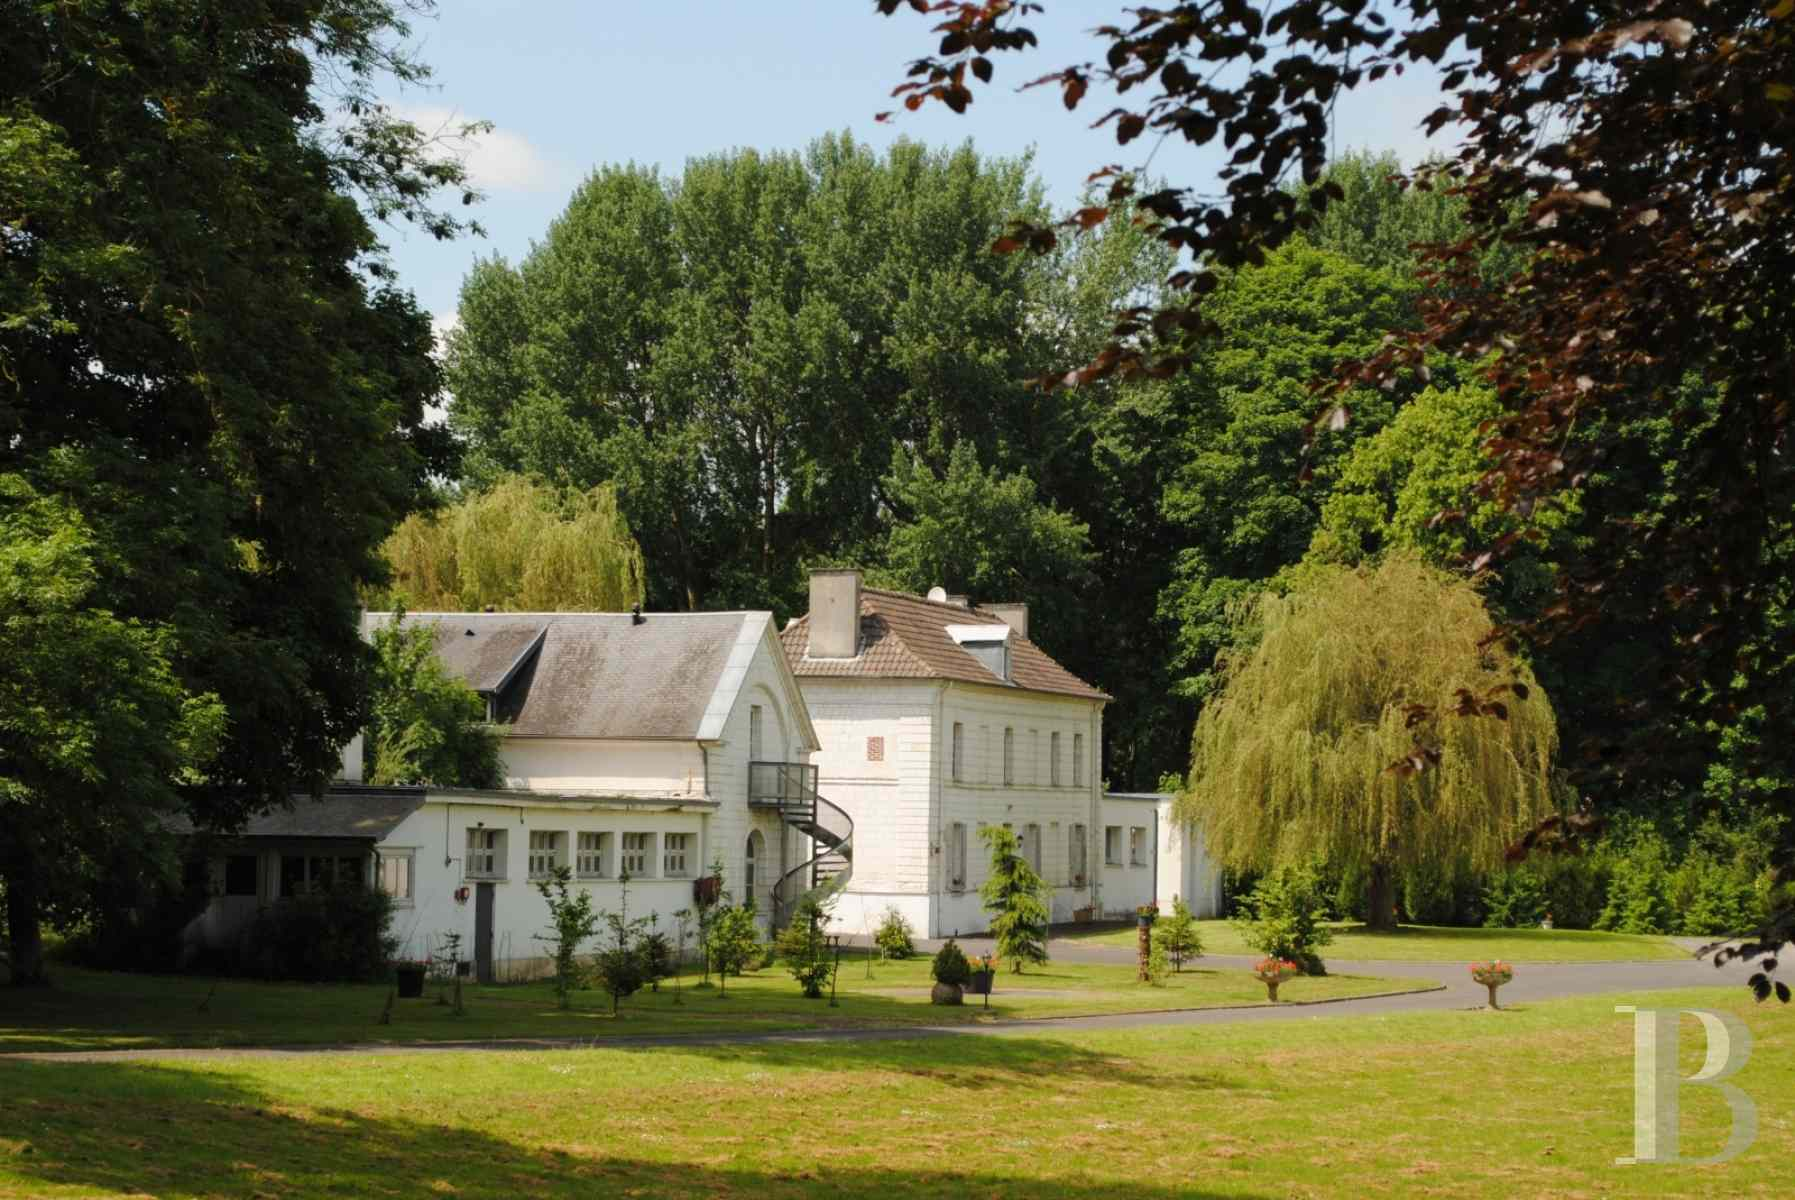 chateaux a vendre picardie 19eme siecle - 14 zoom